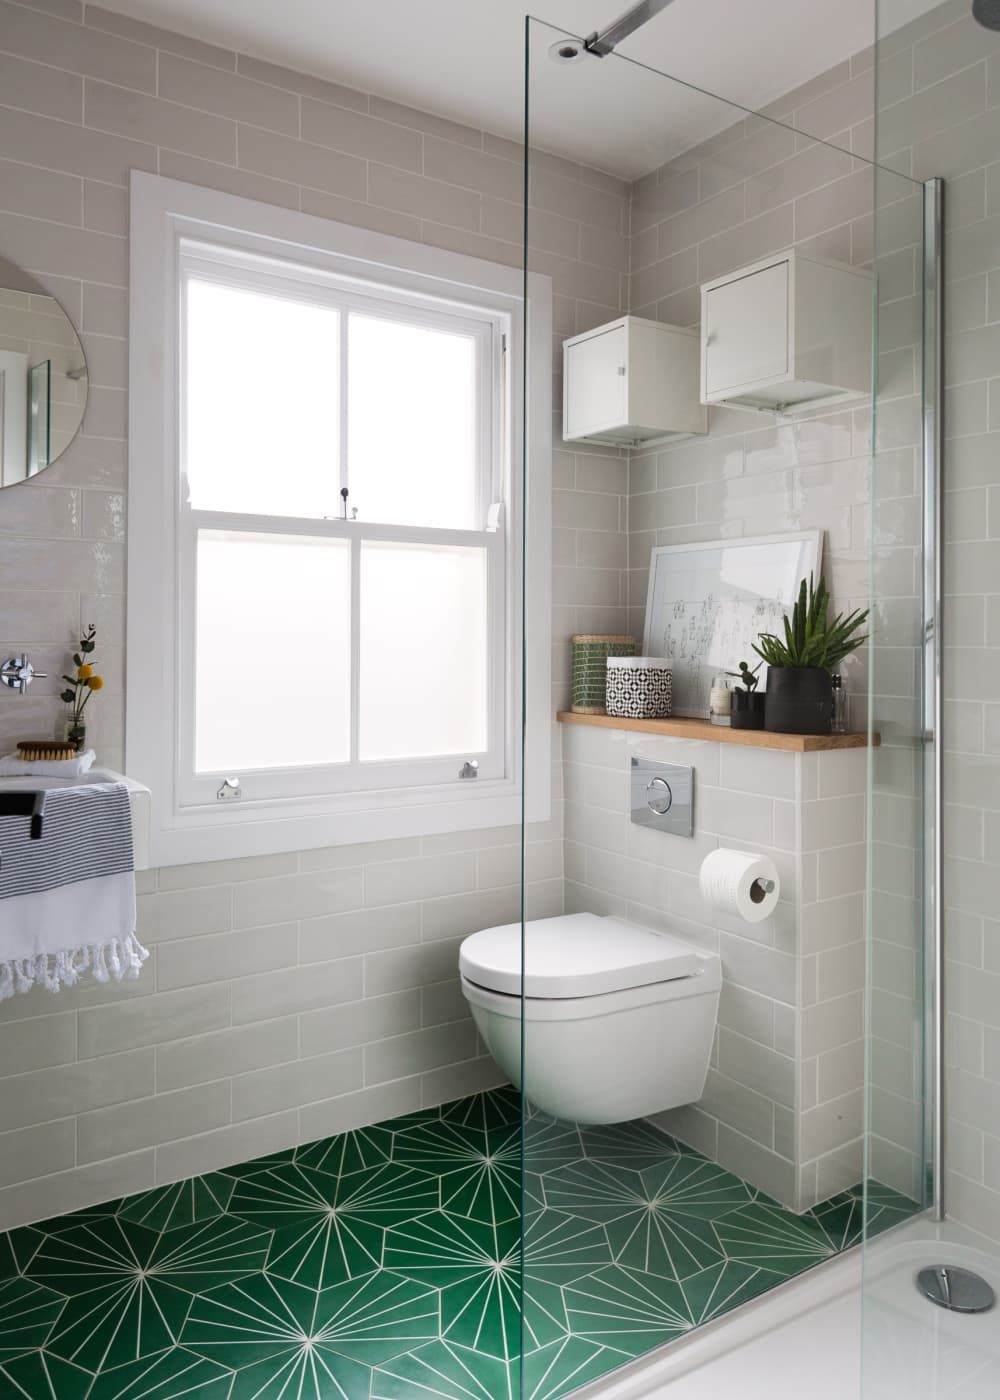 50 Incredible Bathrooms To Add To Your Dream Home Pinboard Now Green Bathroom Tile Bathroom Gorgeous Bathroom Tile